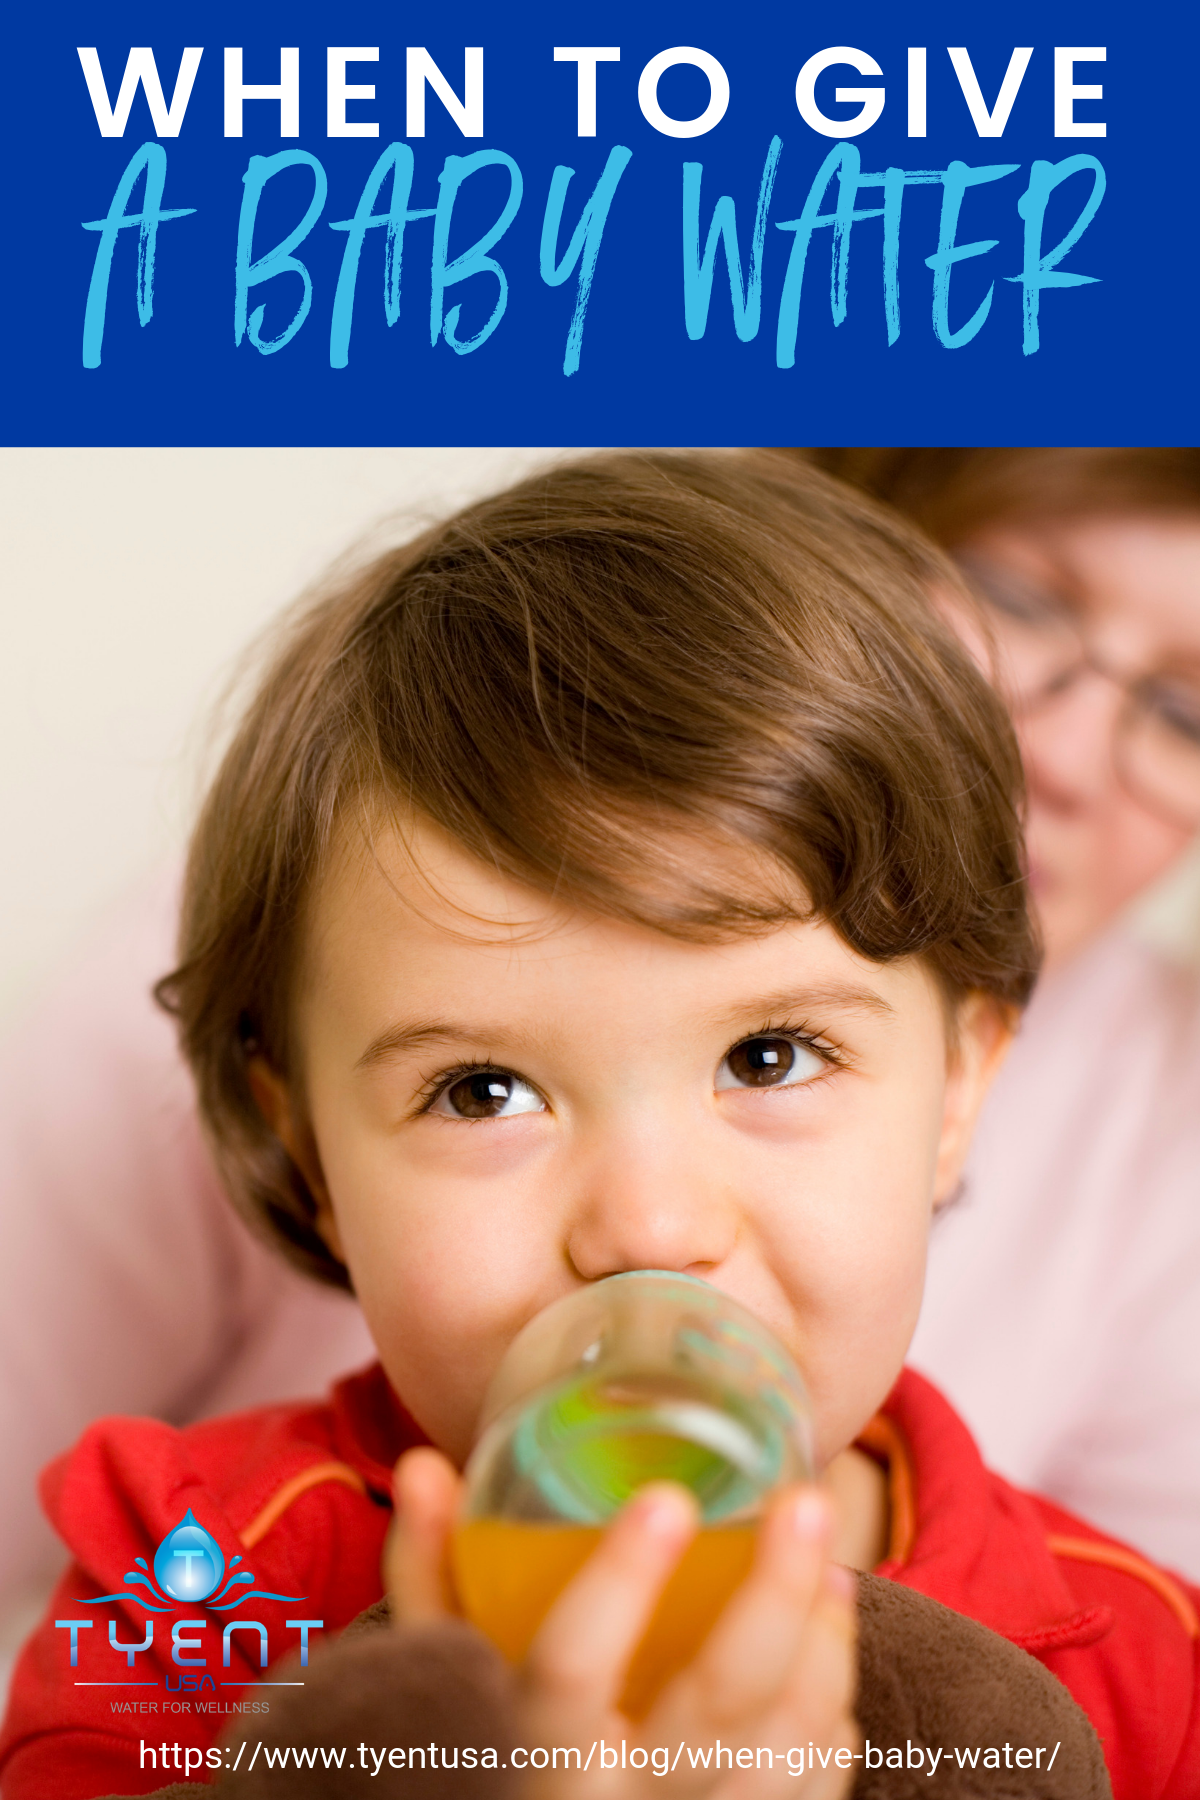 When To Give A Baby Water https://www.tyentusa.com/blog/when-give-baby-water/